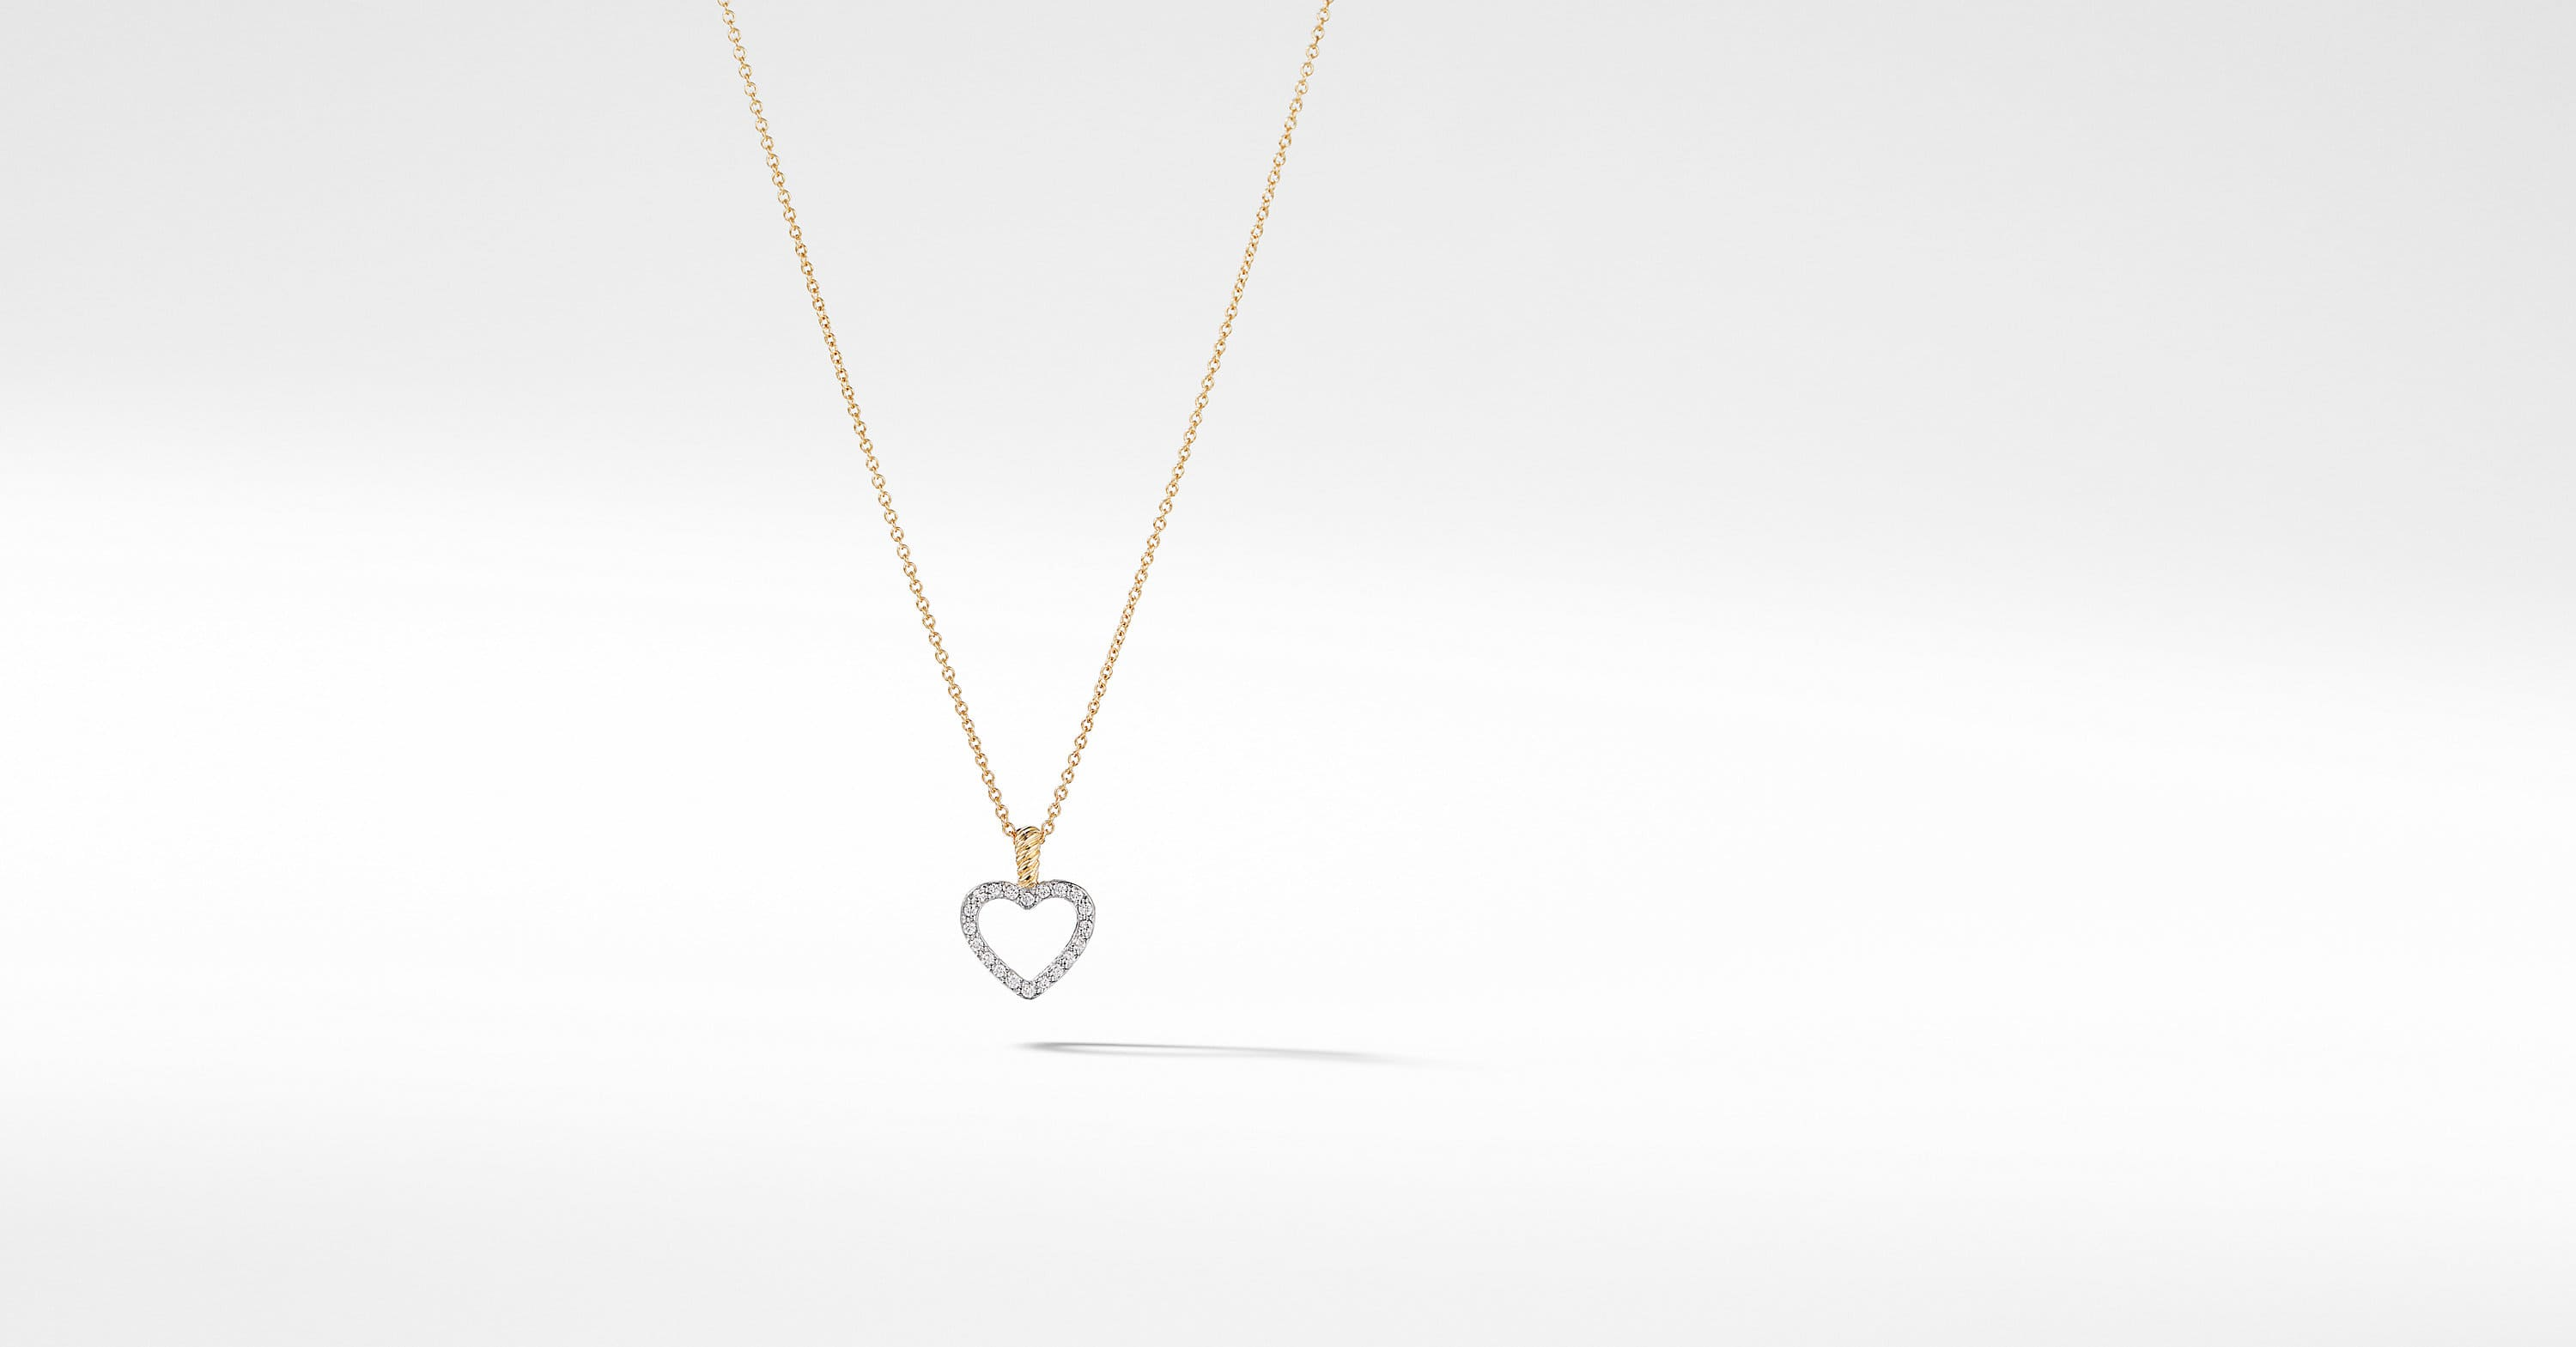 Cable Collectibles Heart Pendant Necklace with Diamonds in 18K Gold